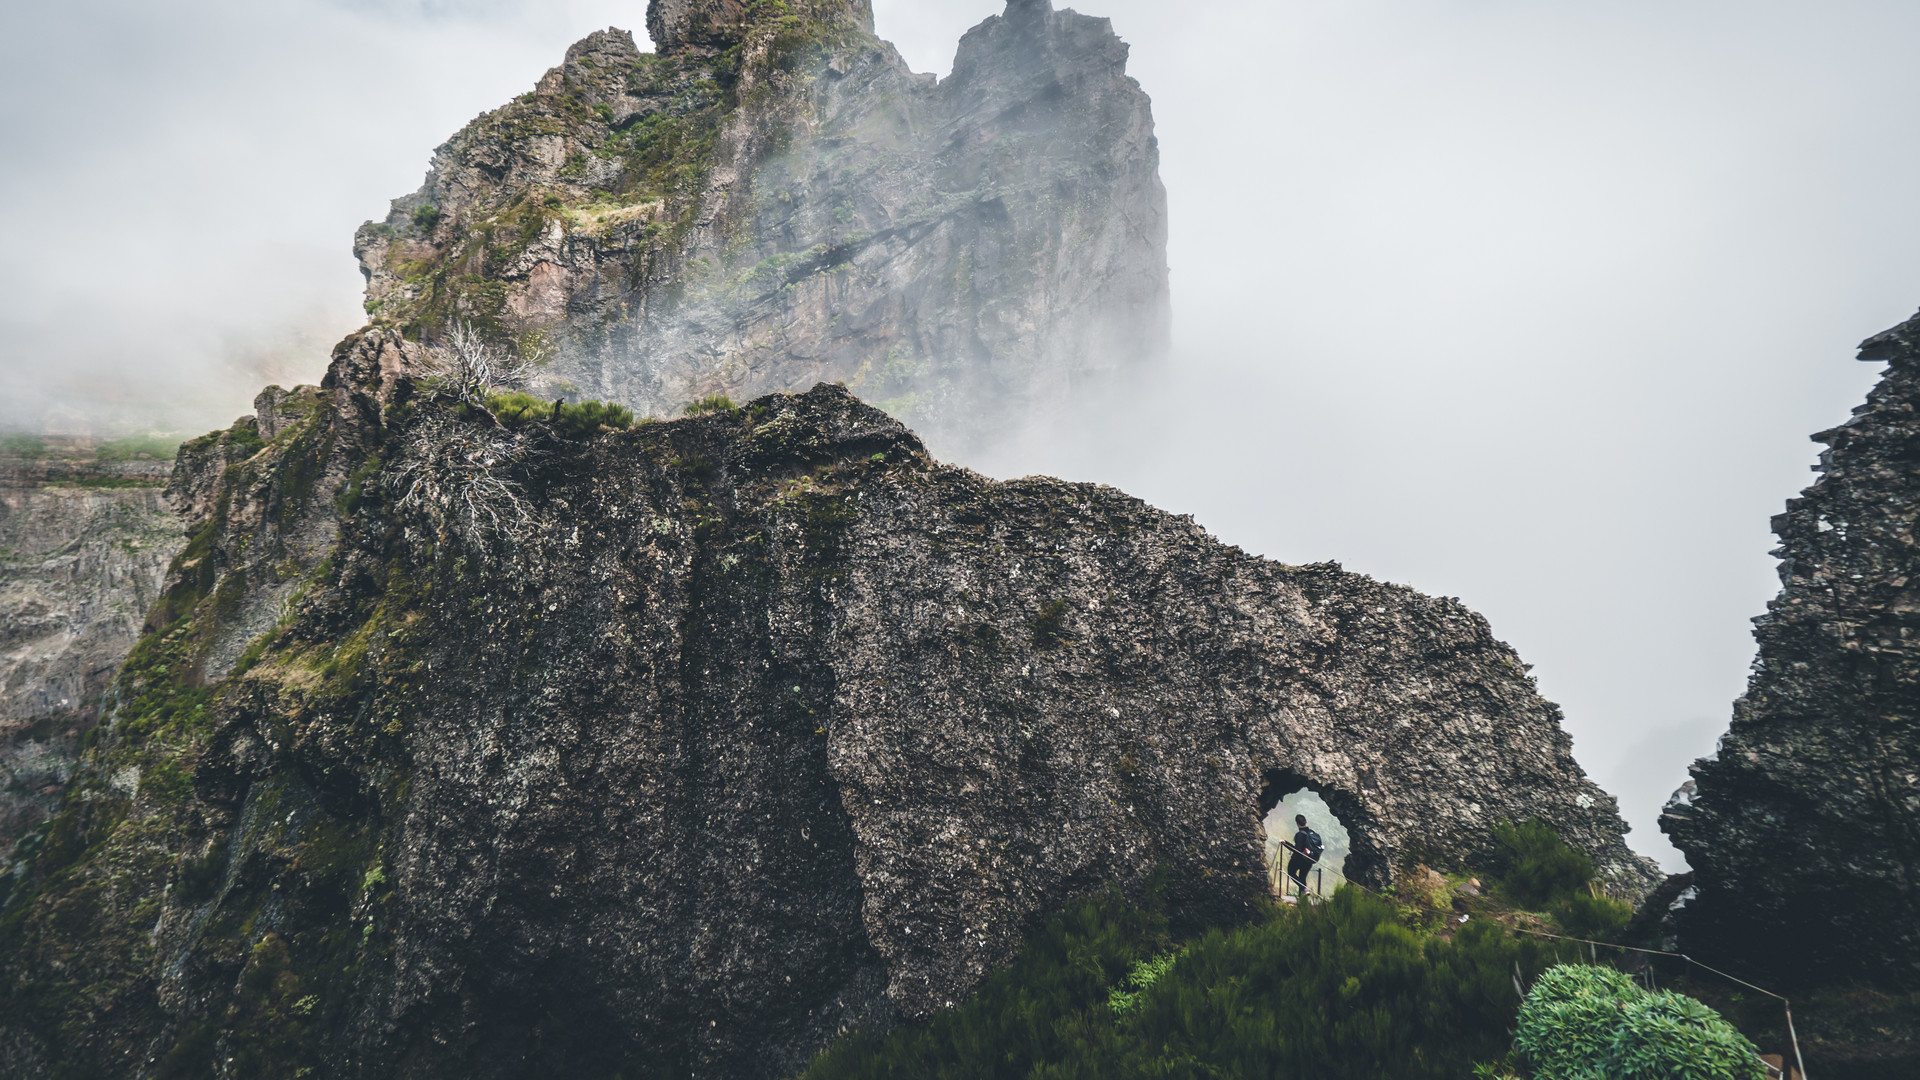 Person walking through a mountain formation in the clouds